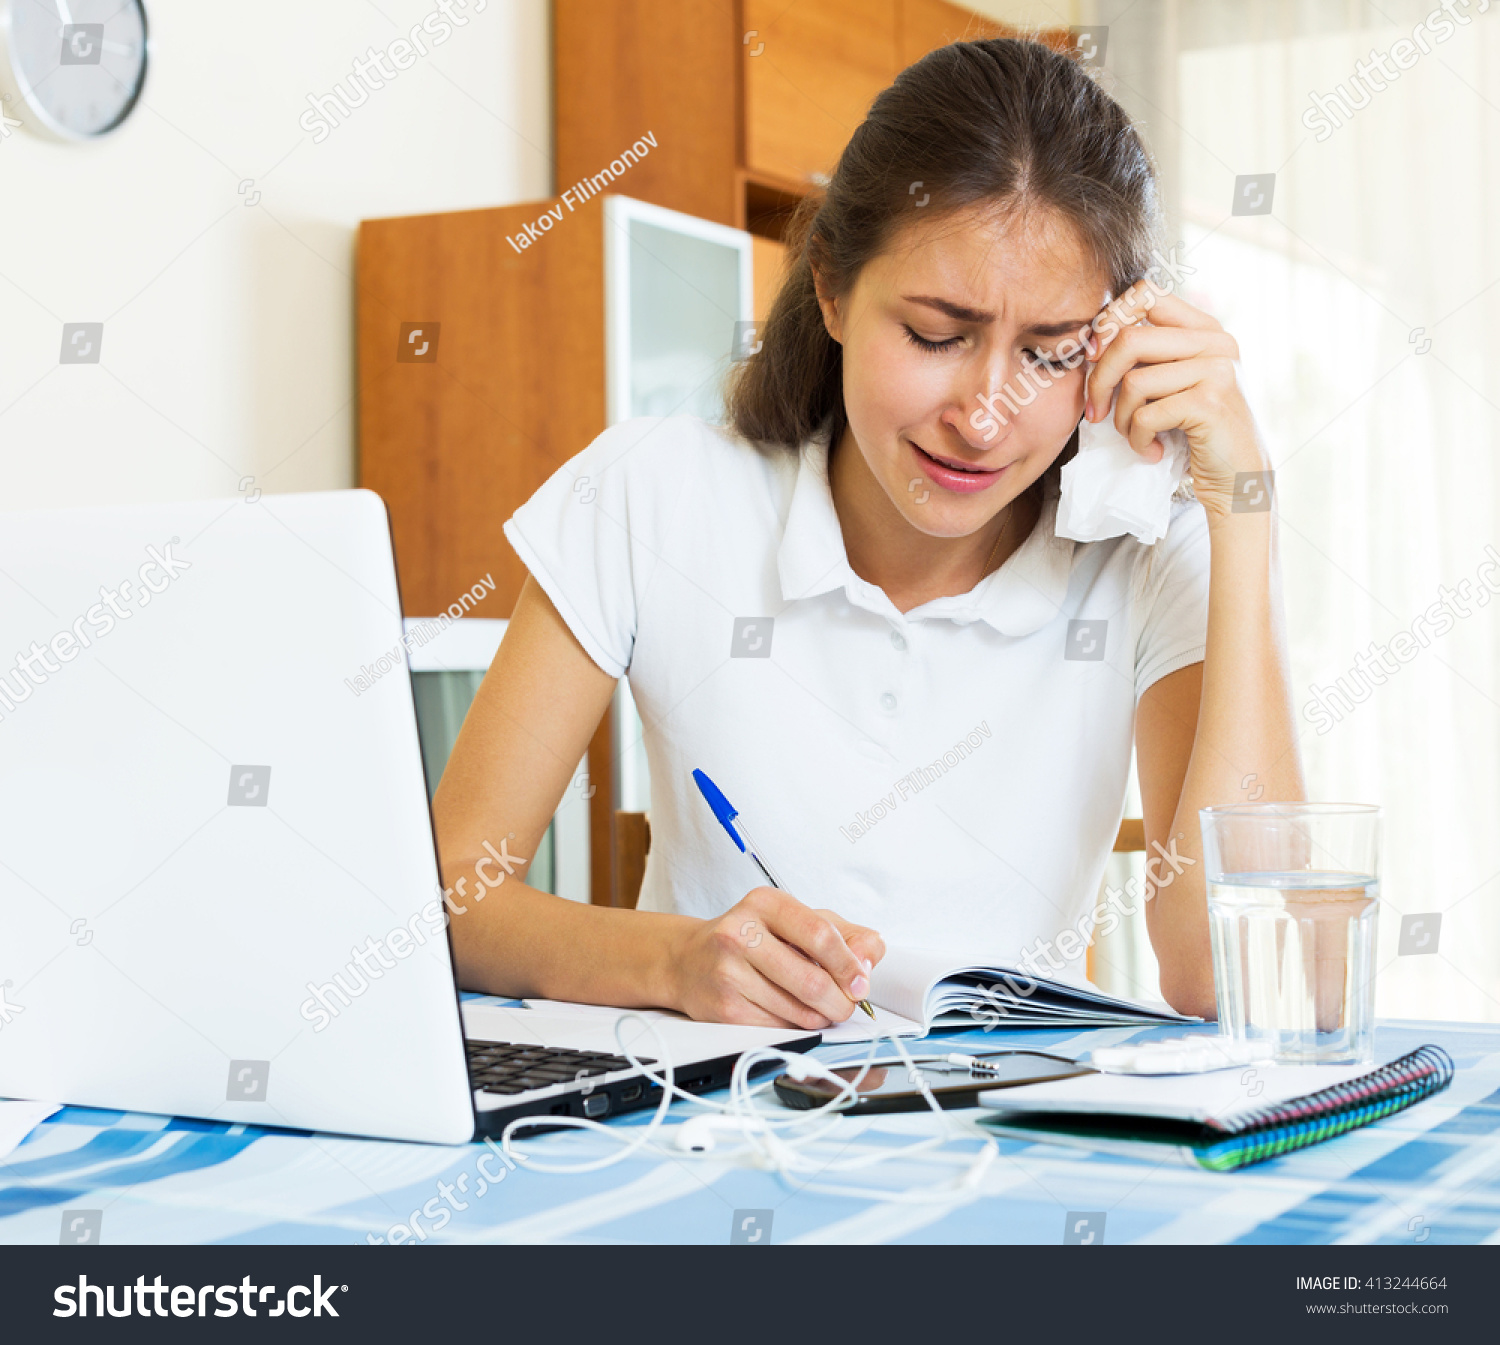 Crying college student